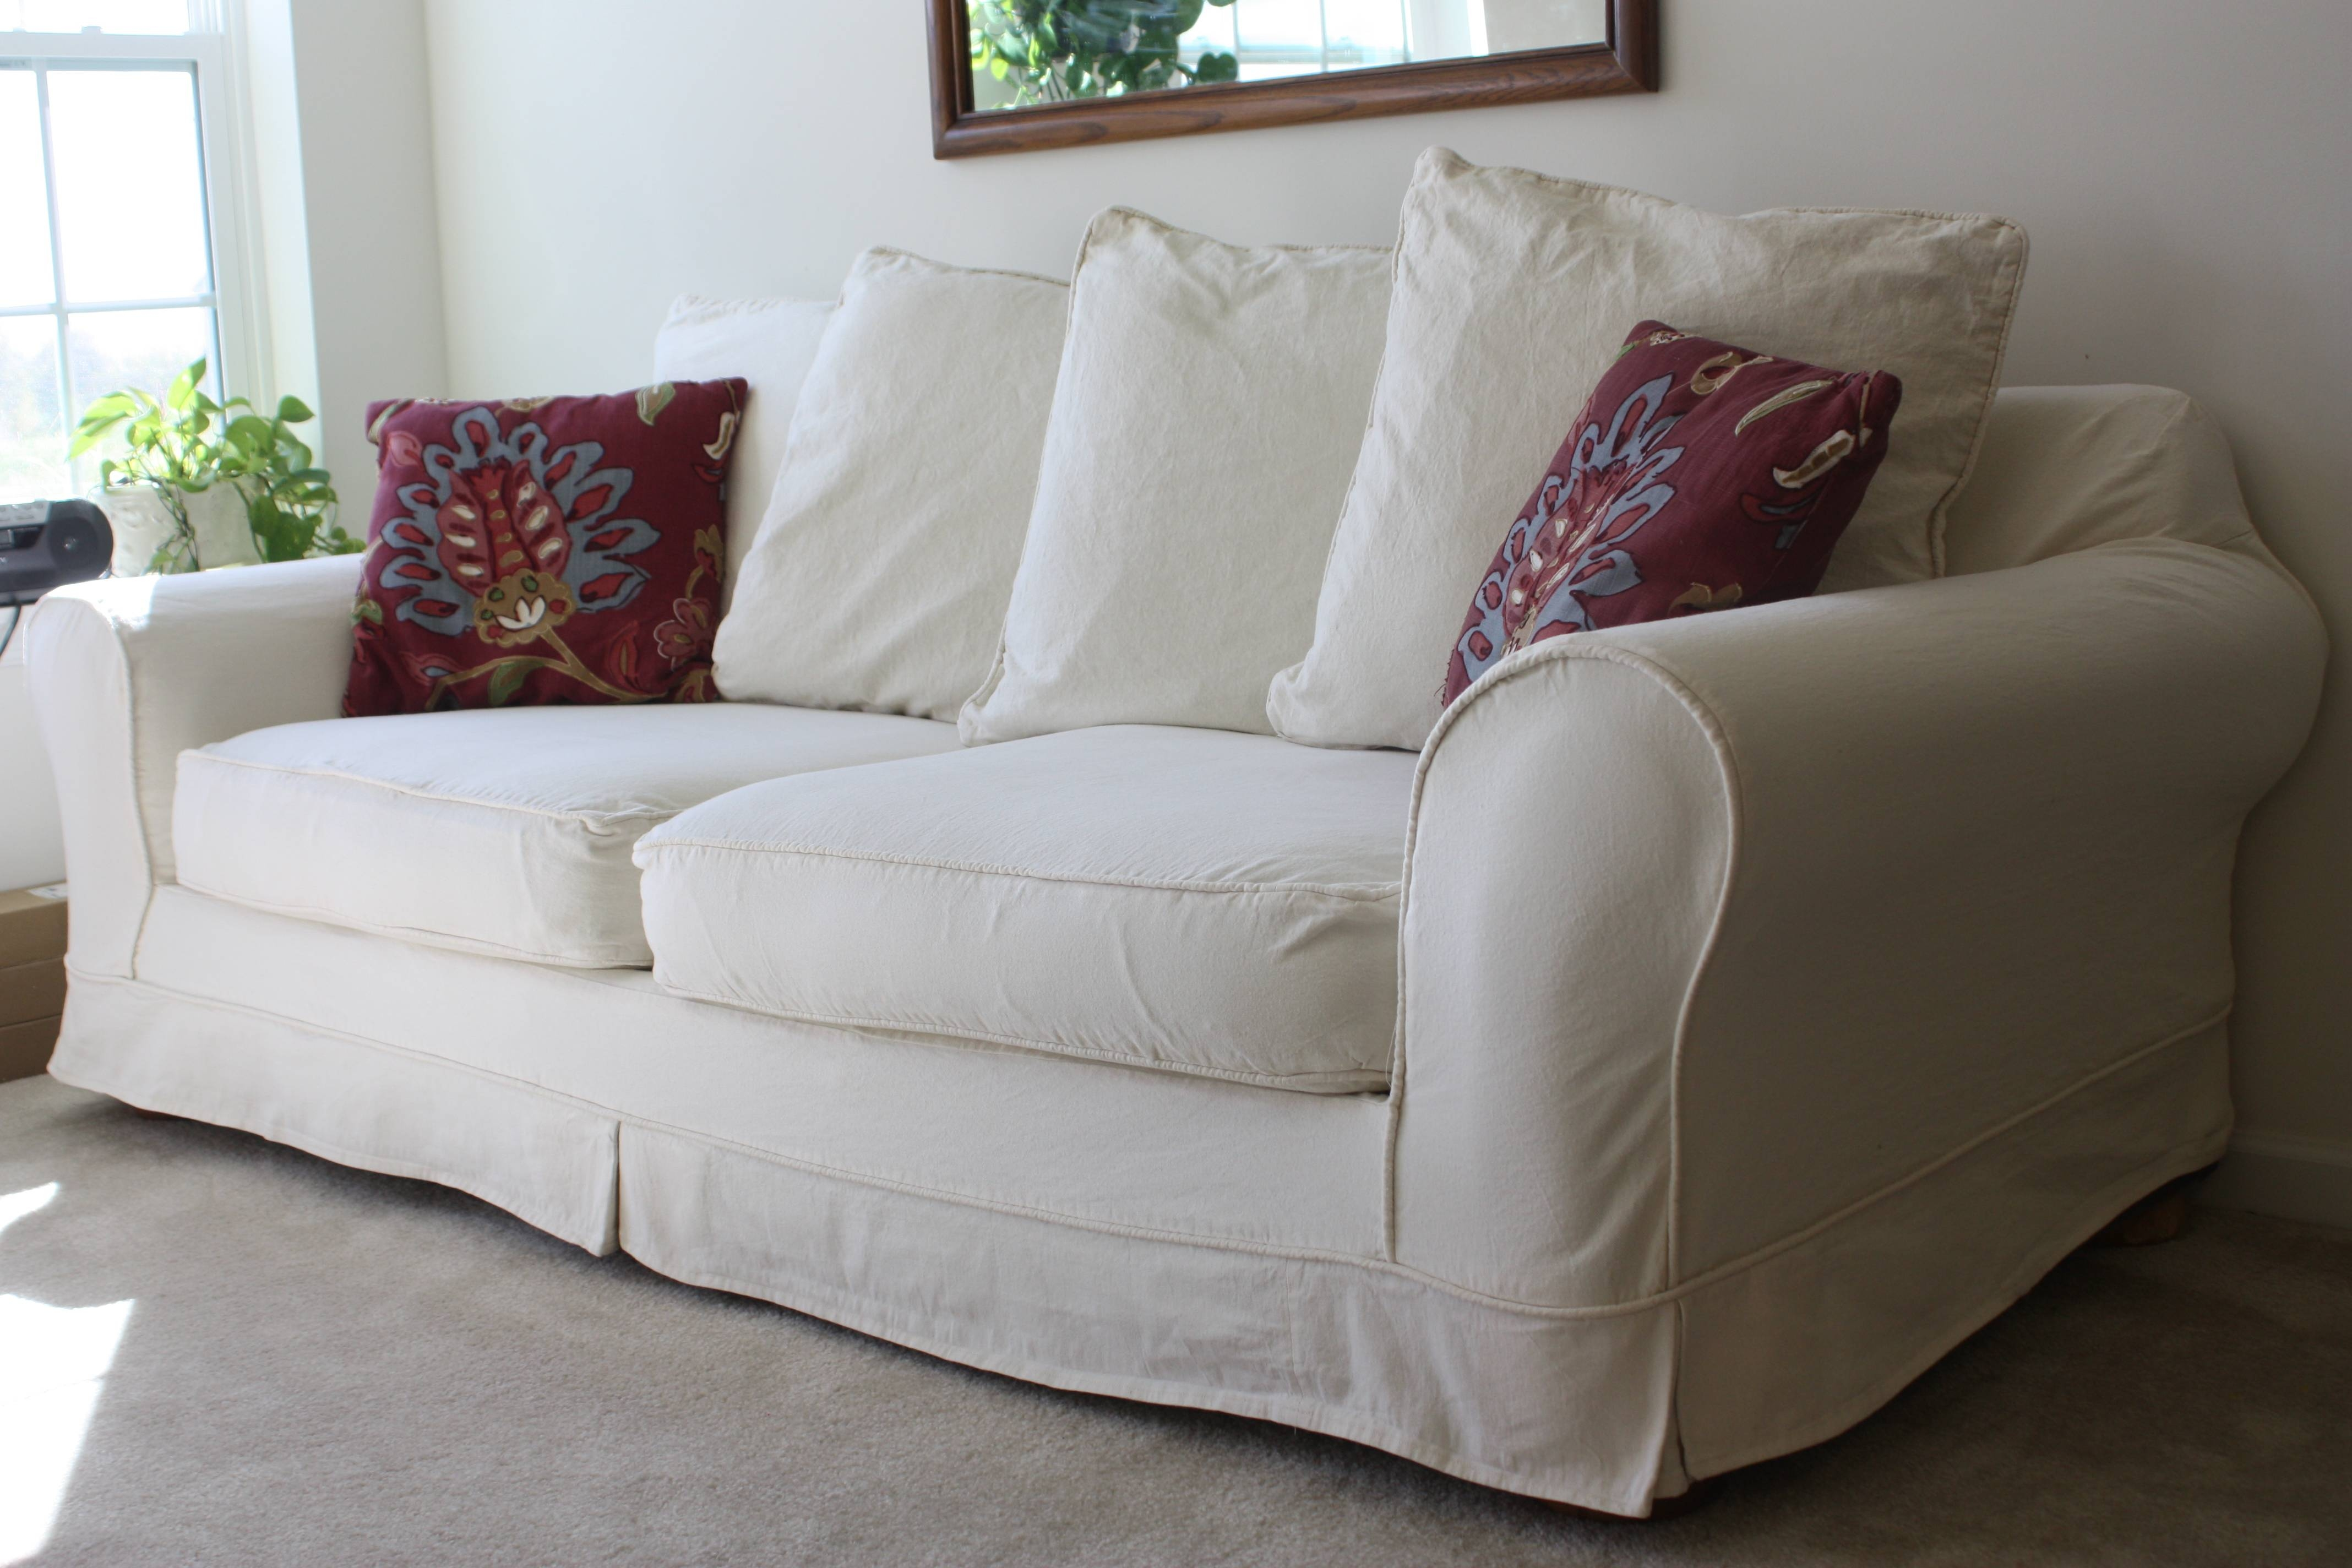 White Slipcovered Sofa For Nice Living Room | Homesfeed throughout Denim Sofa Slipcovers (Image 15 of 15)